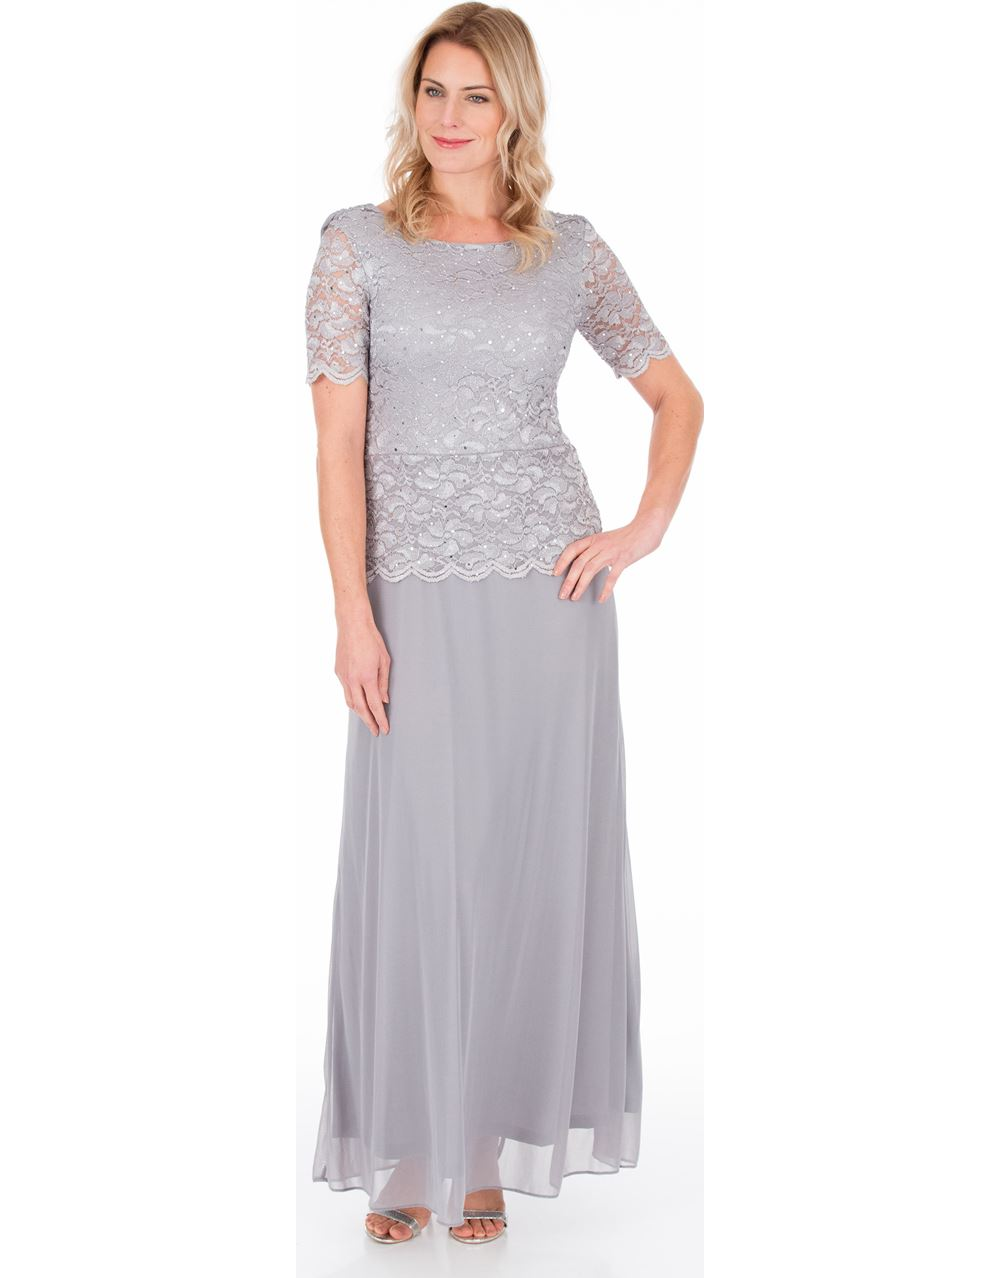 68284ca4df Short Sleeve Lace And Mesh Maxi Dress - Silver Grey